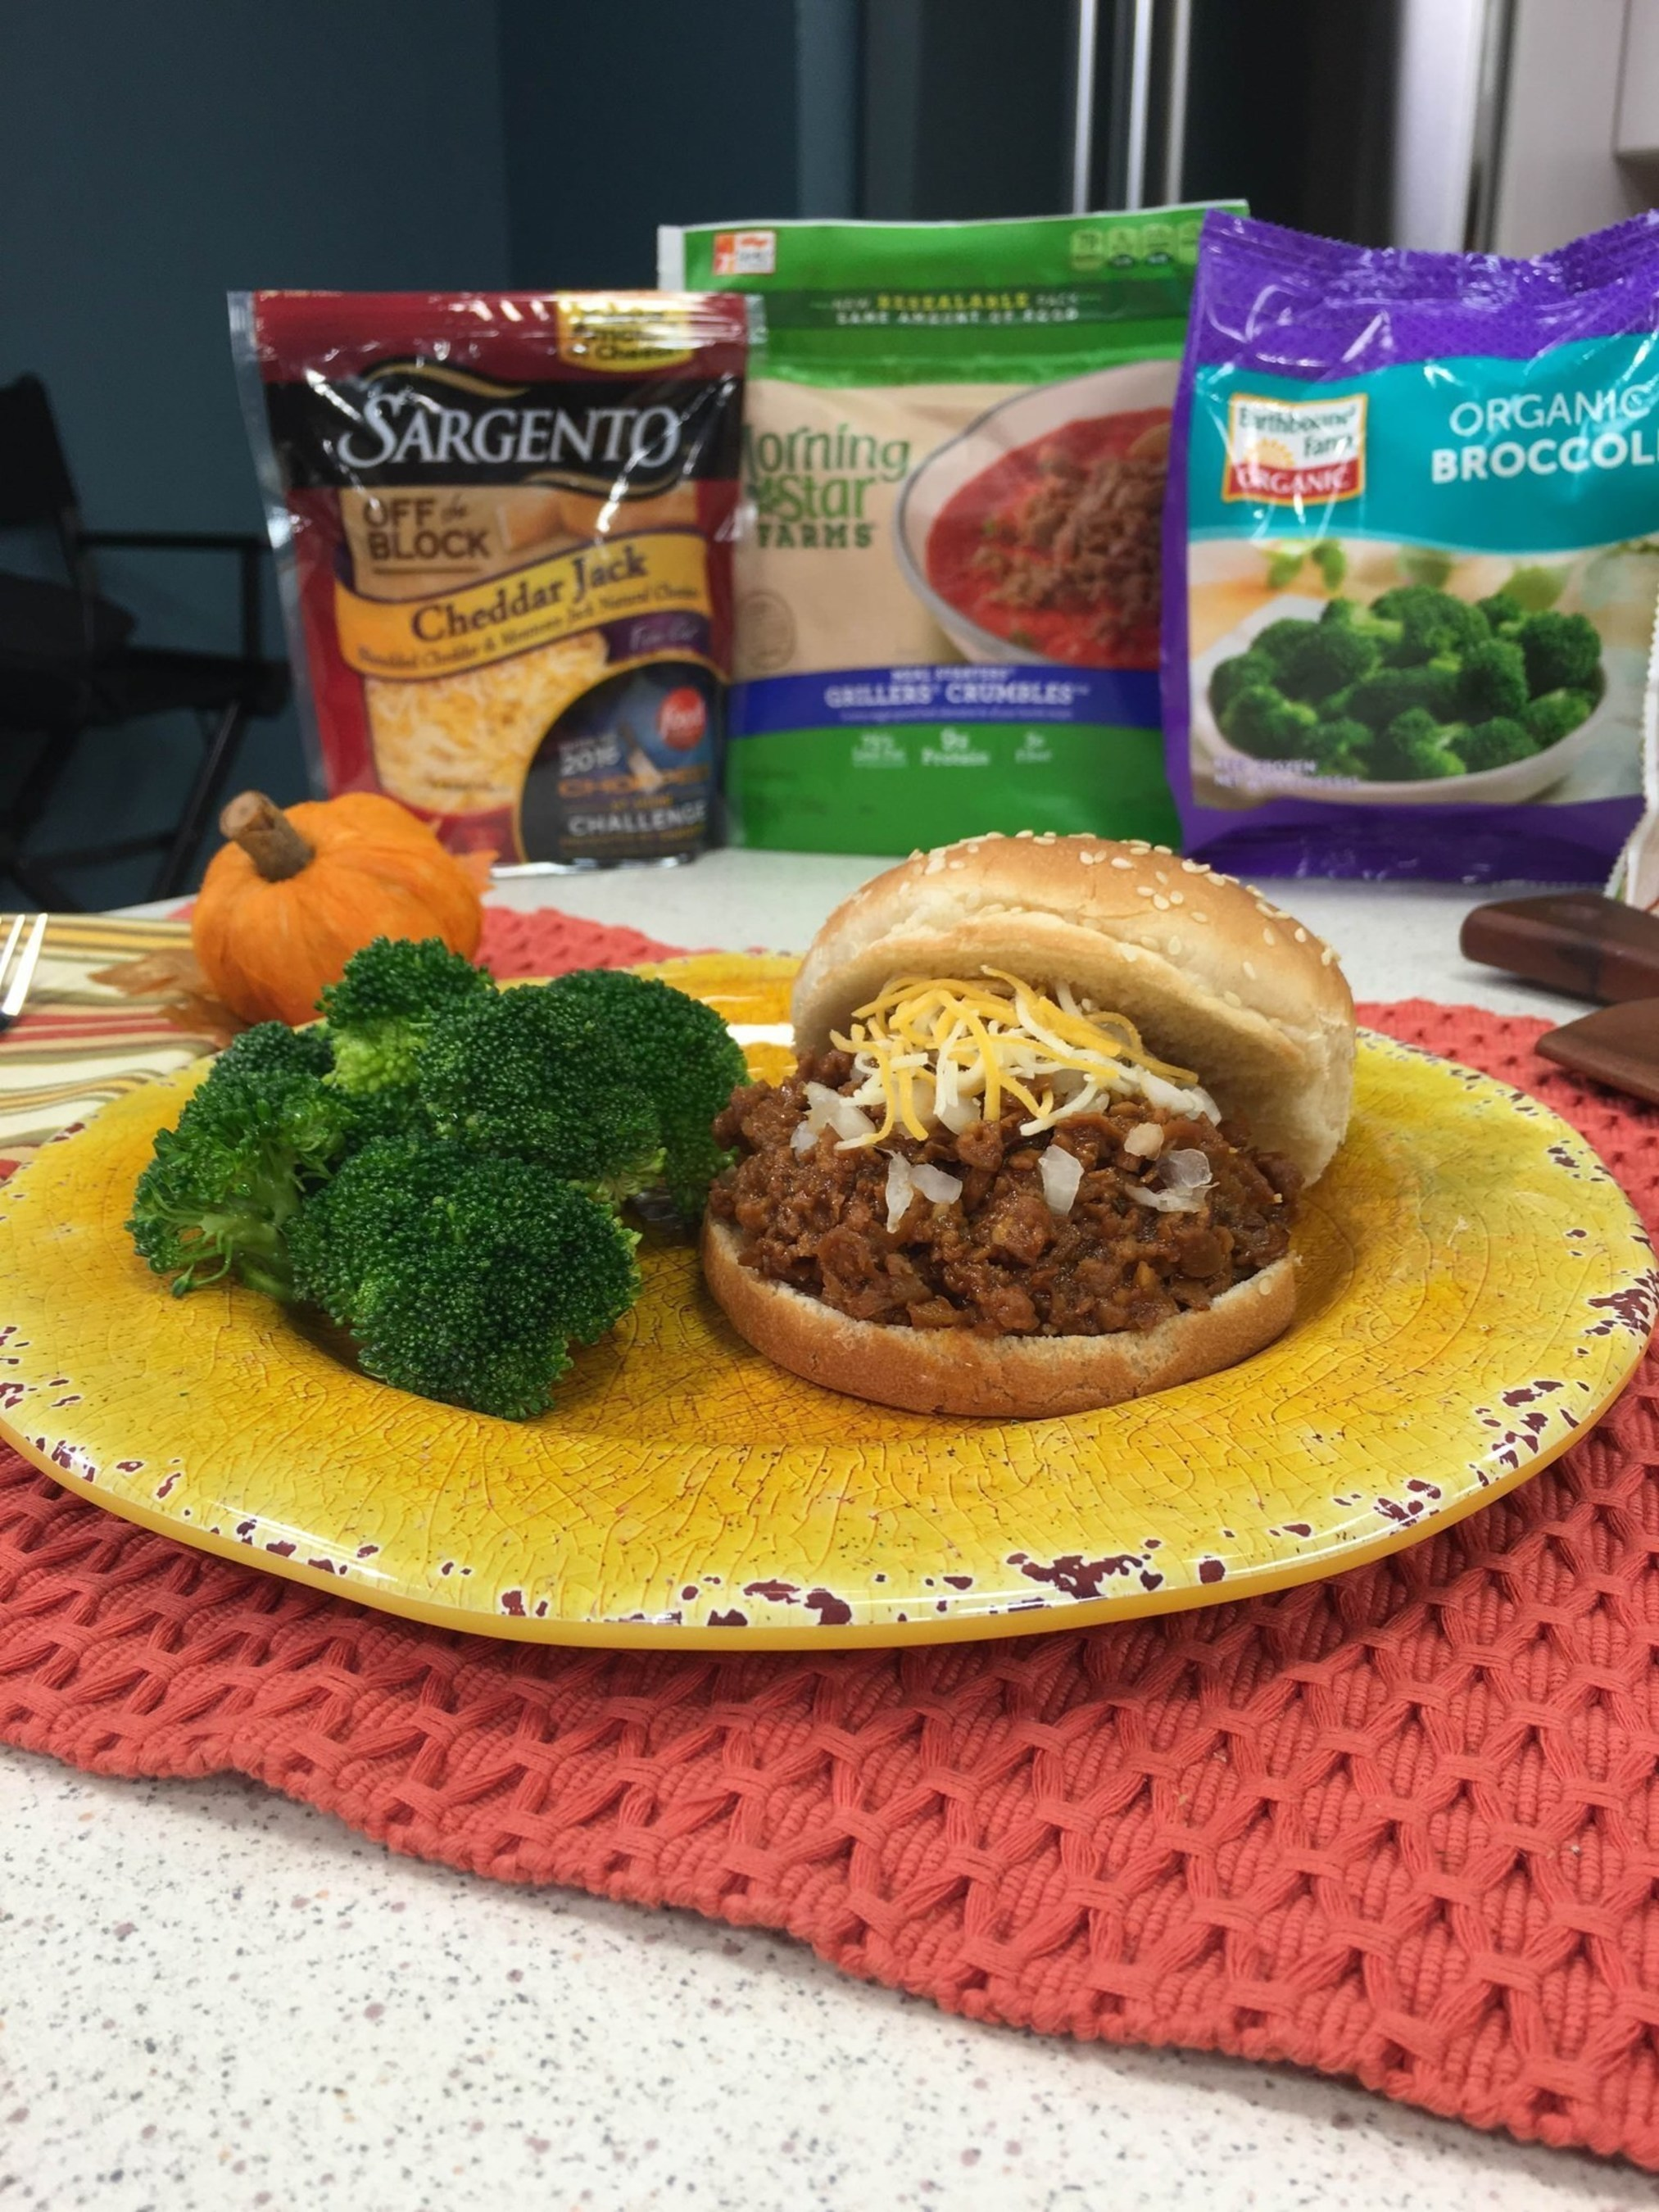 Your family will love these tasty, healthy Vegetarian Sloppy Joes, made with delicious ingredients from the frozen and refrigerated aisles of your local grocery store.